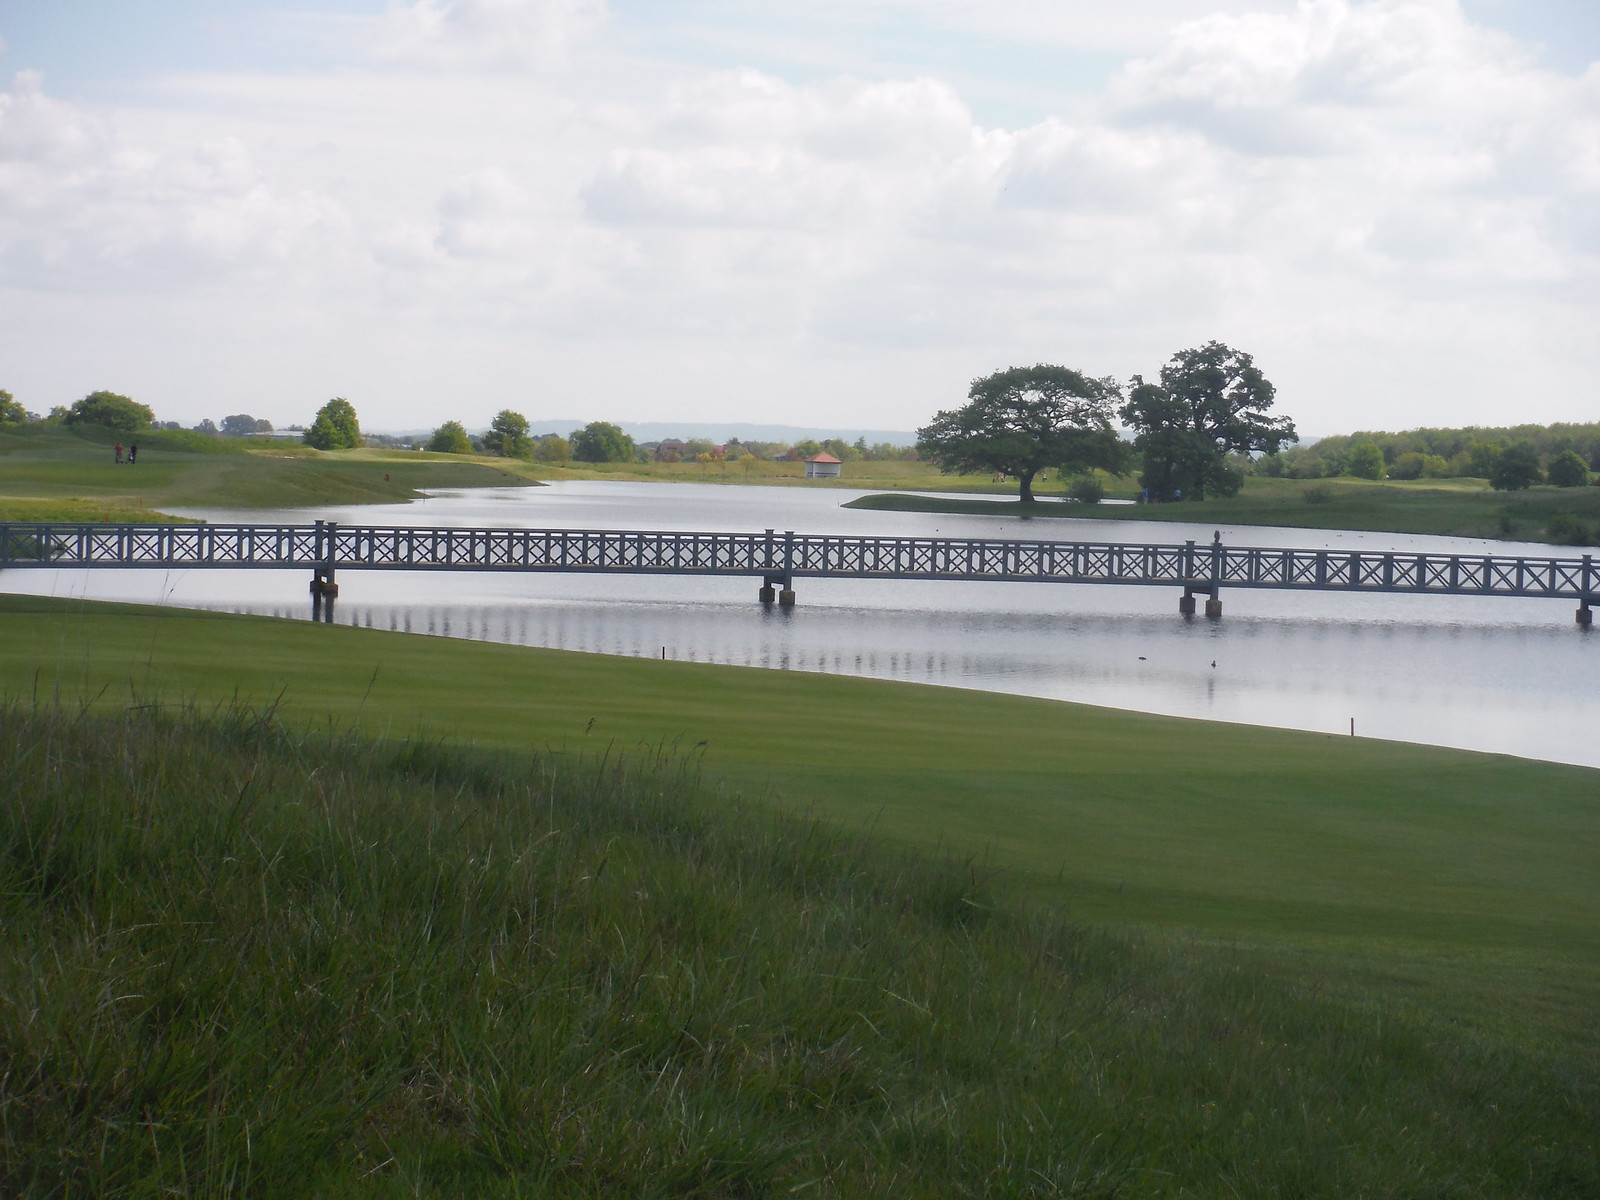 Bridge to cross, Oxfordshire Golf Club SWC Walk 190 - Thame Circular